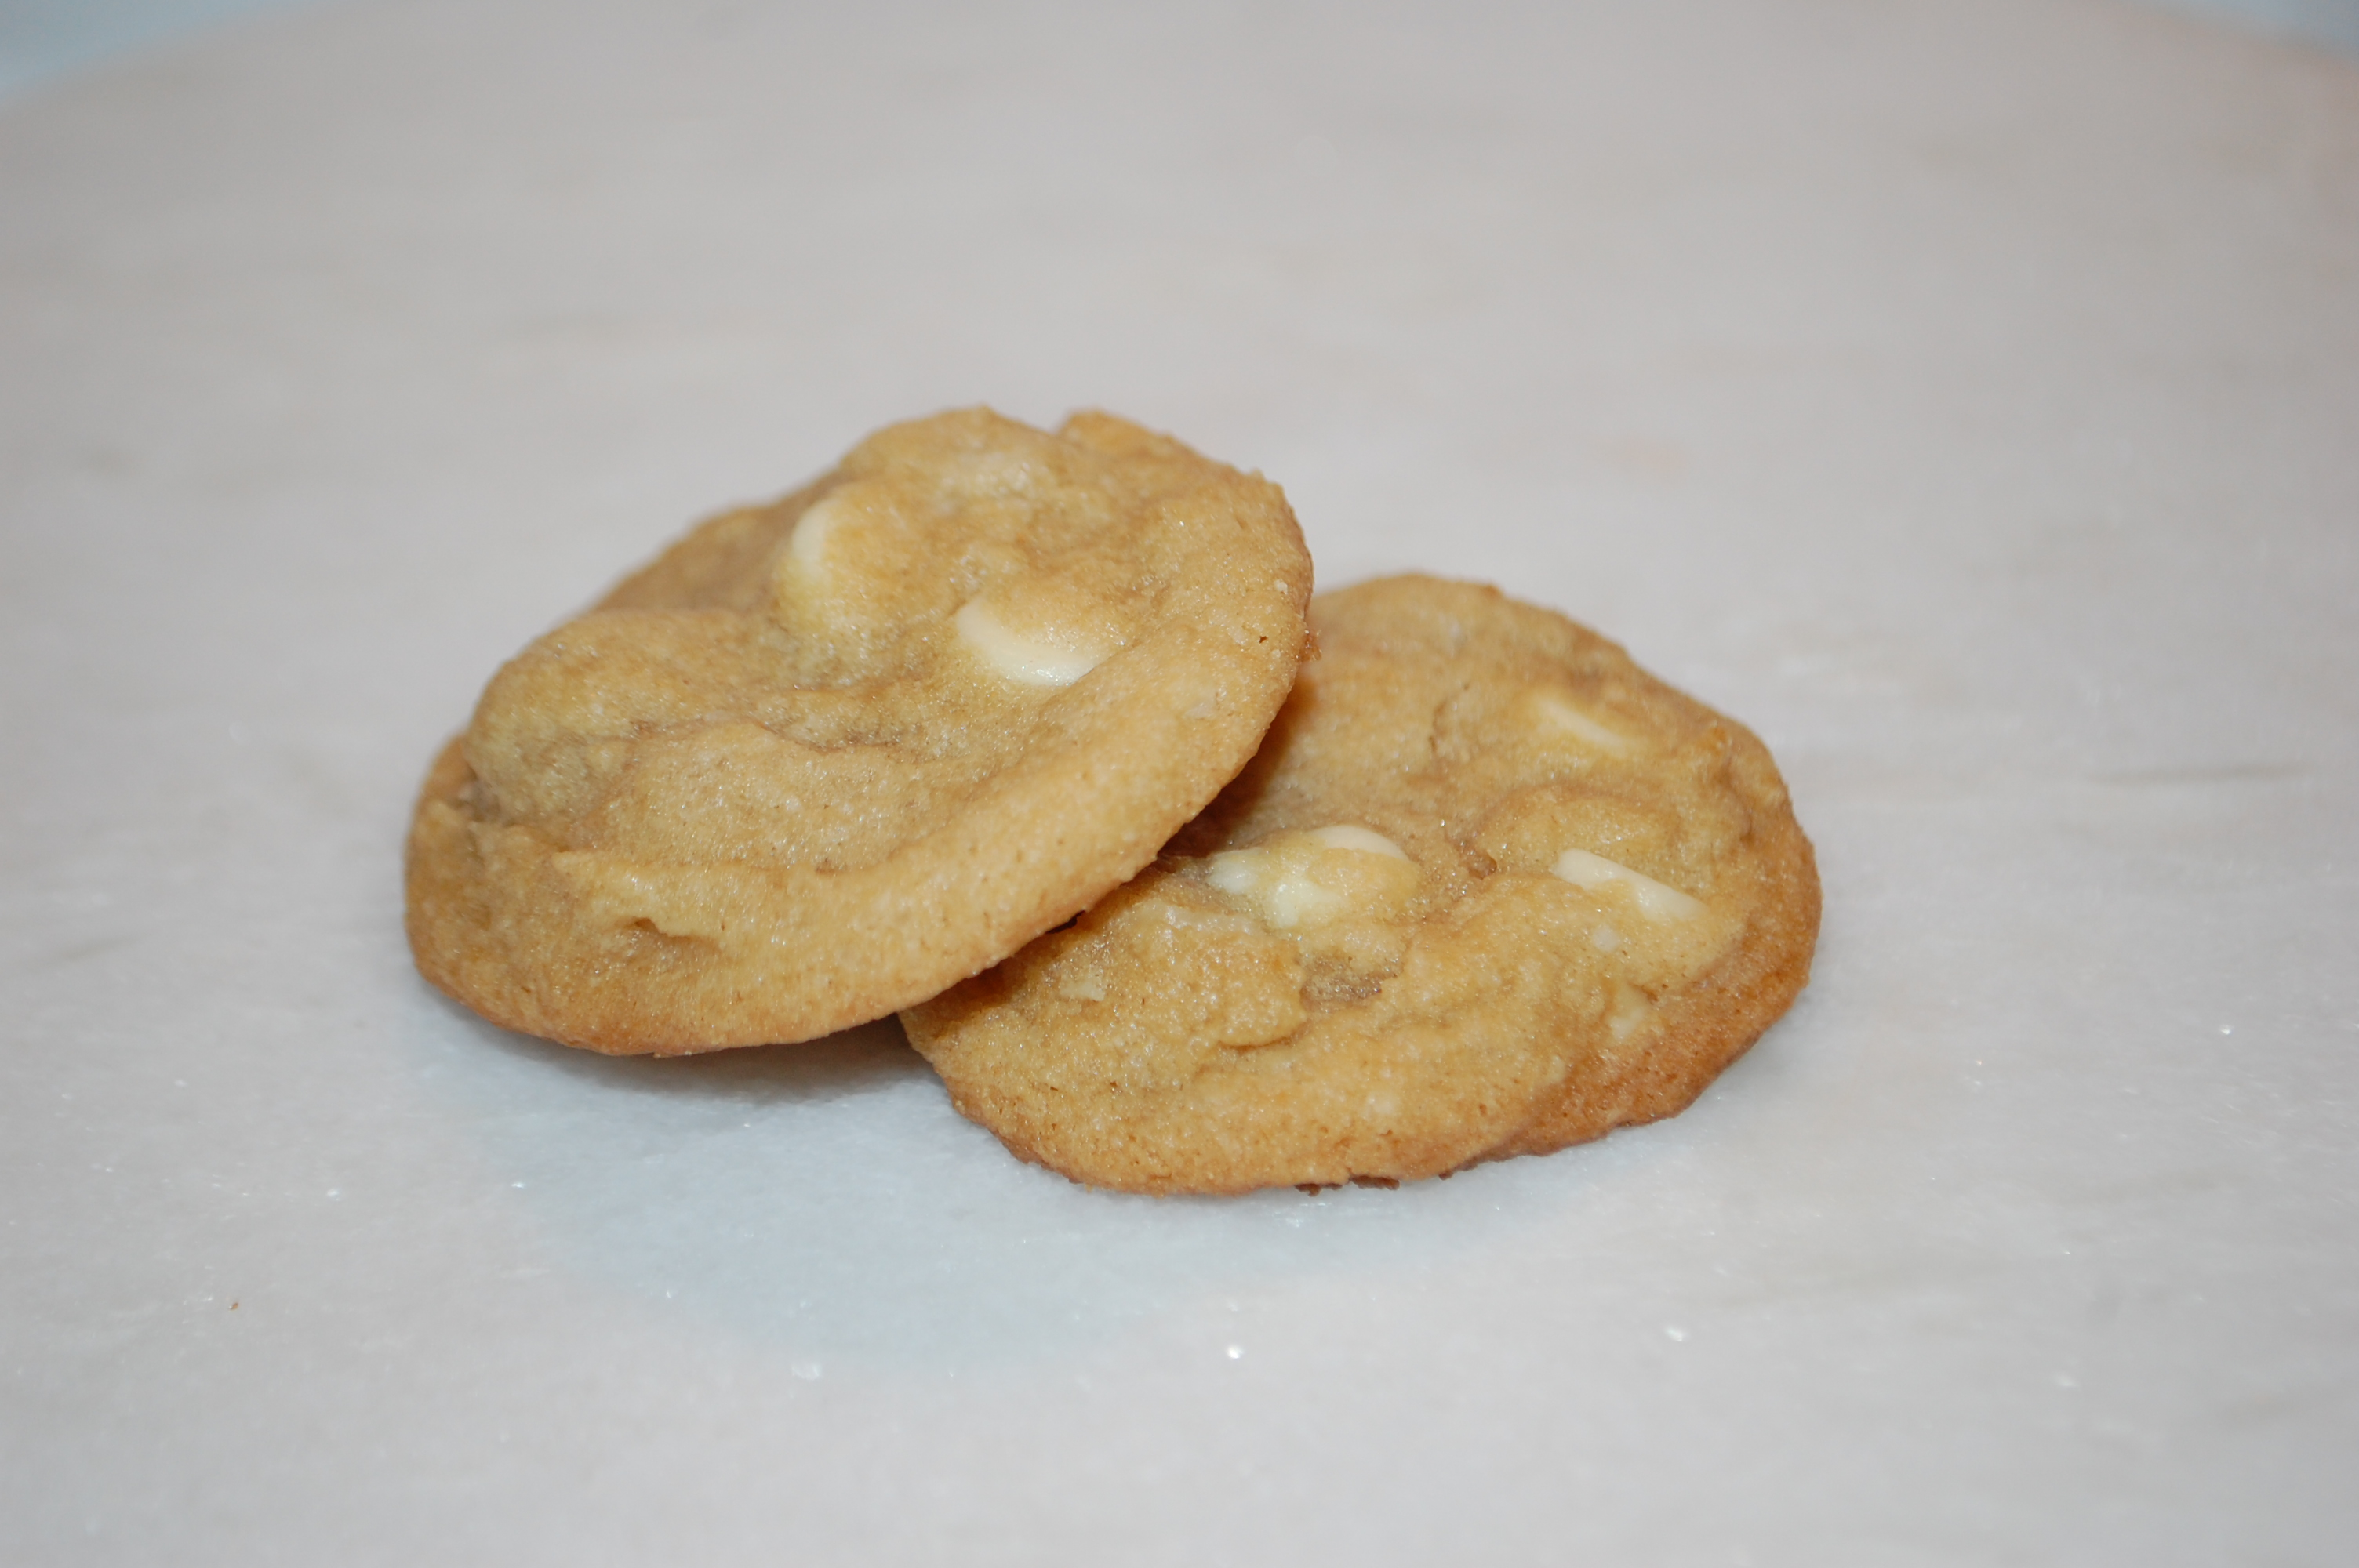 Delicious soft cookie full of chopped macadamia nuts and white chocolate chips.